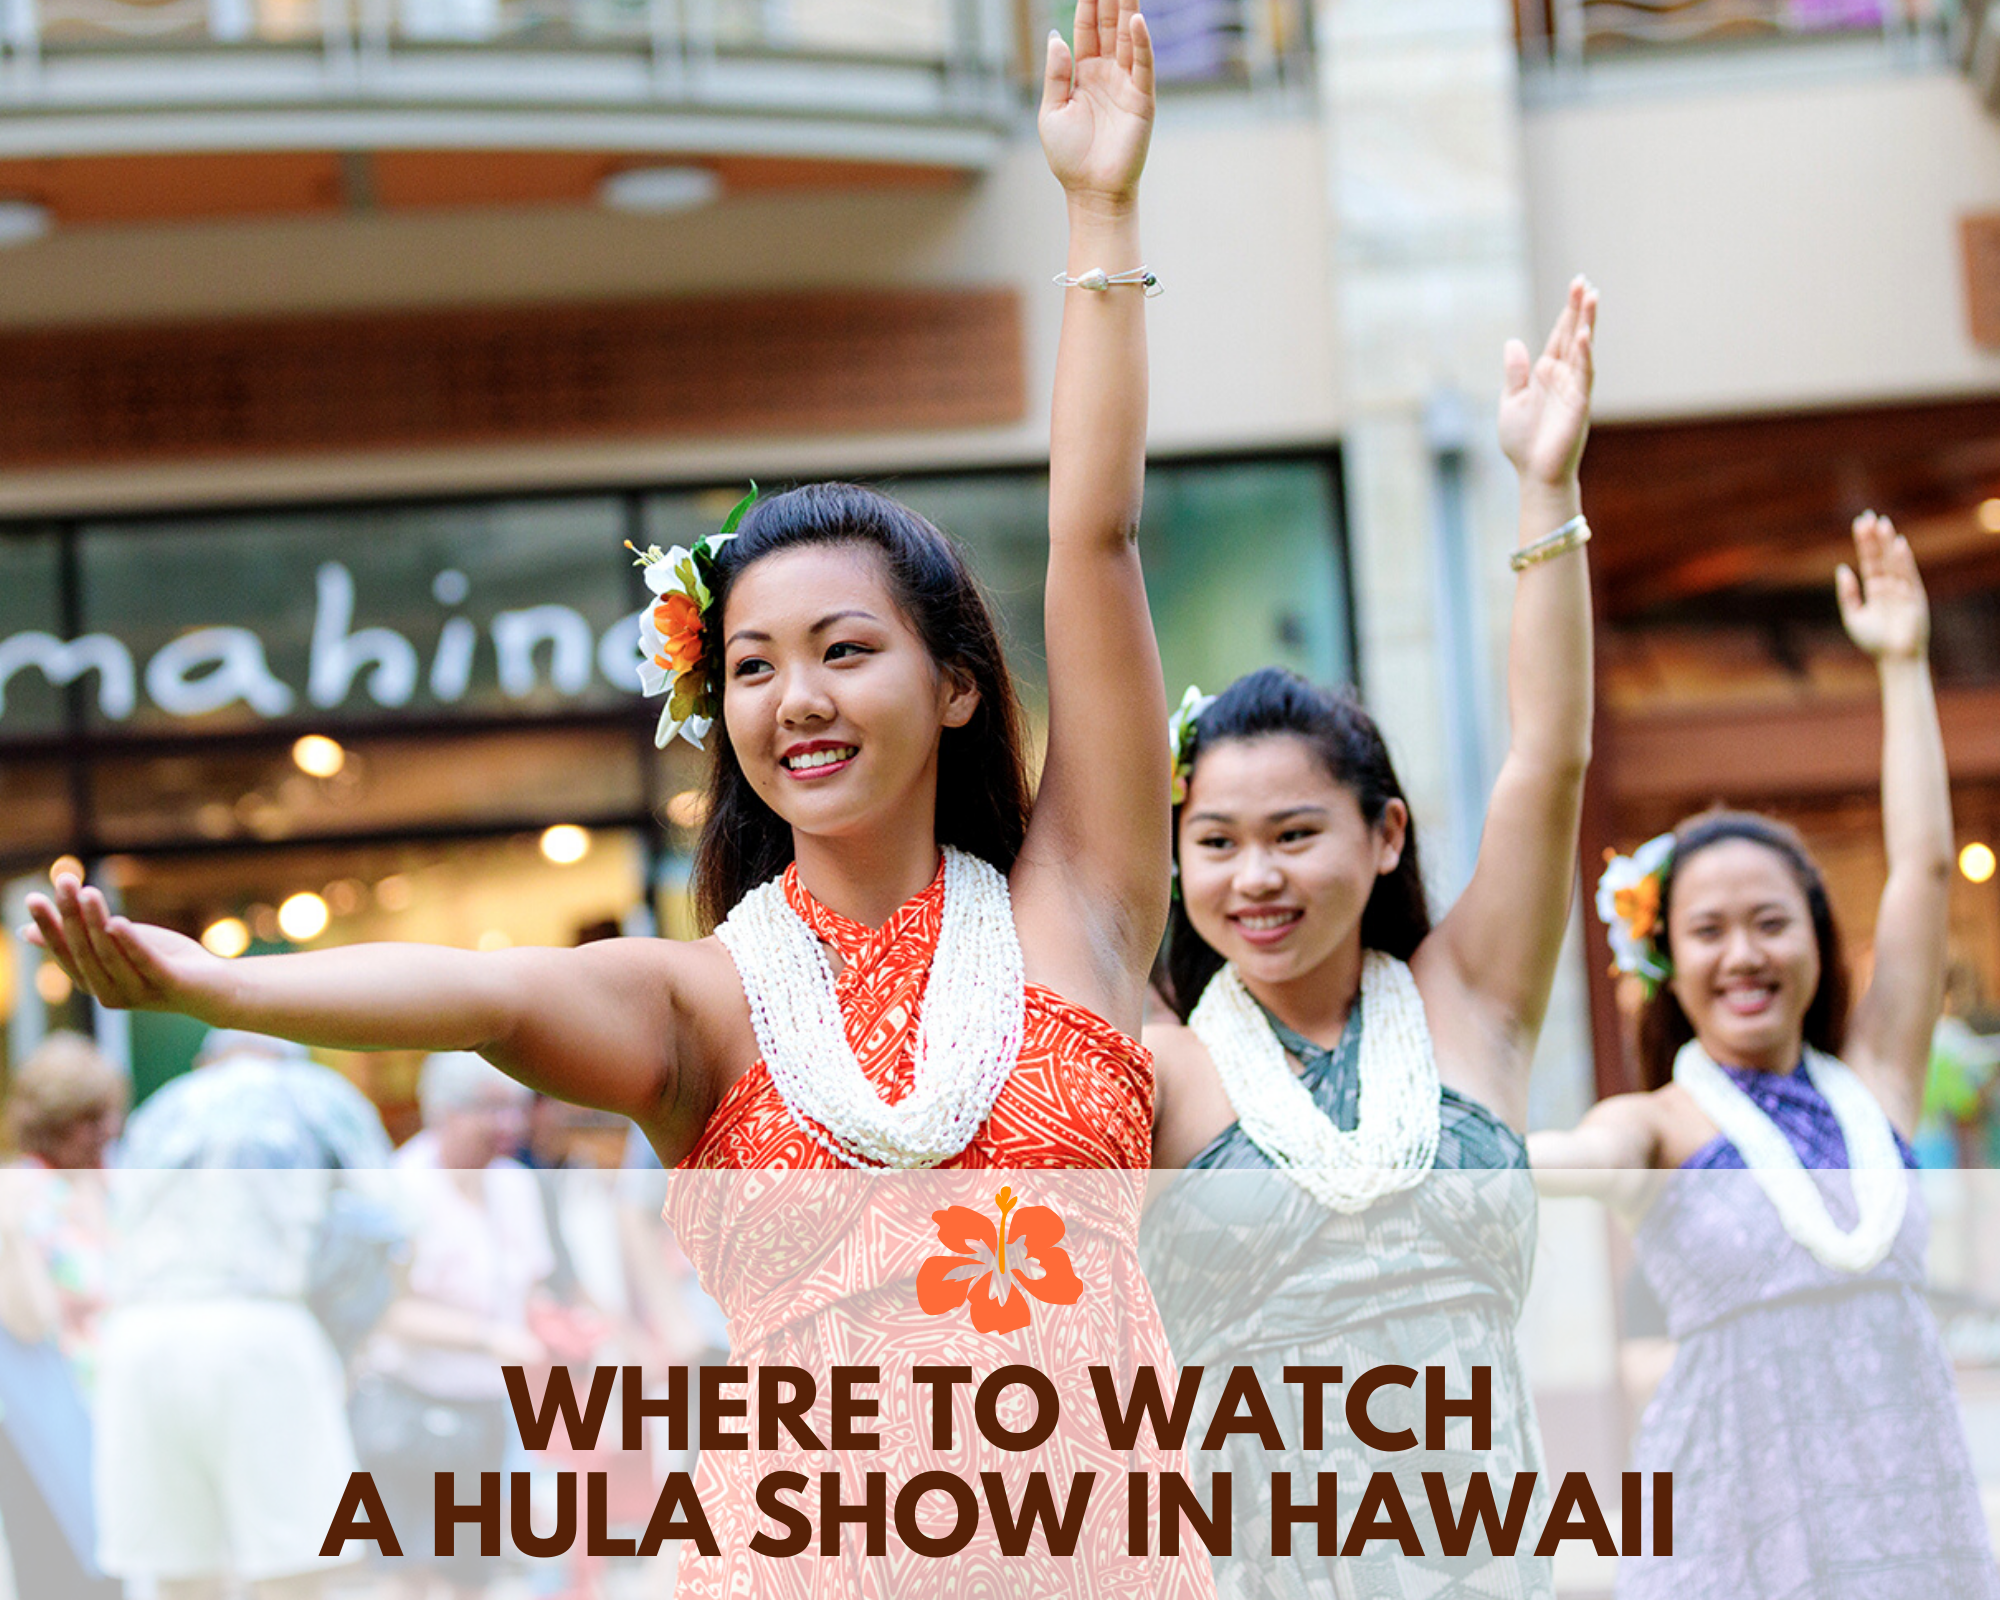 Where to Watch a Hula Show in Hawaii